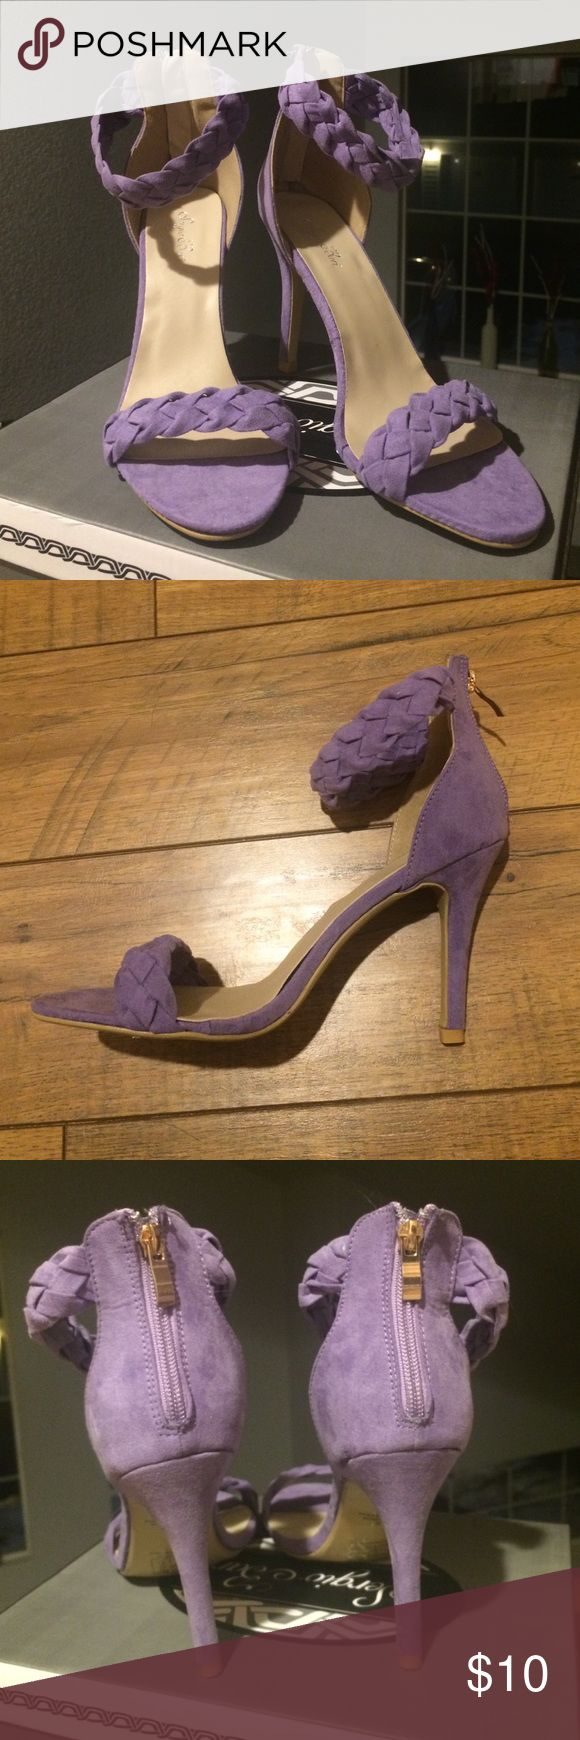 """Purple Heeled Sandal Never worn! New in box. Size 8.5 and true to size. 3 3/4"""" heel. Sergio Bari Shoes Heels"""